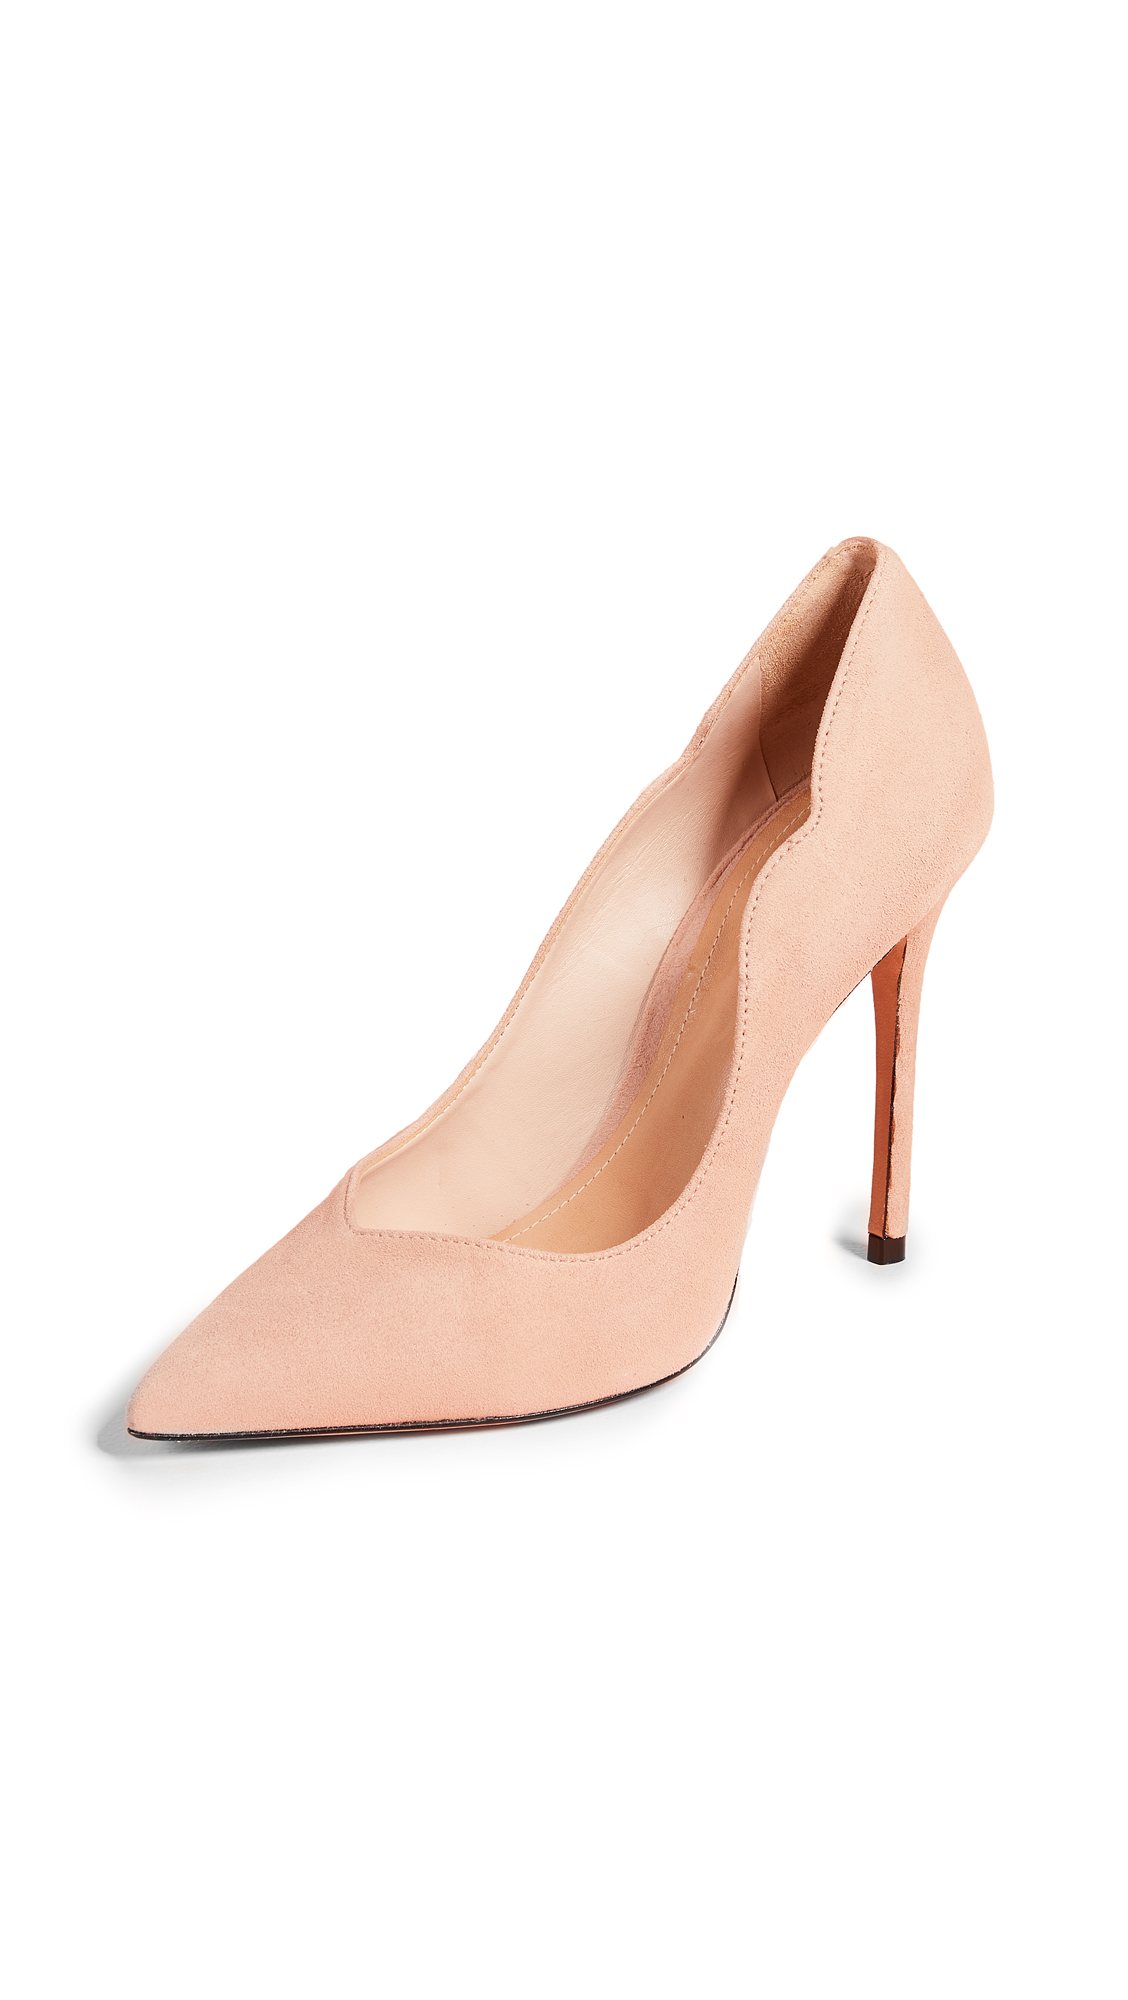 Buy Schutz Monaliza Point Toe Pumps online, shop Schutz